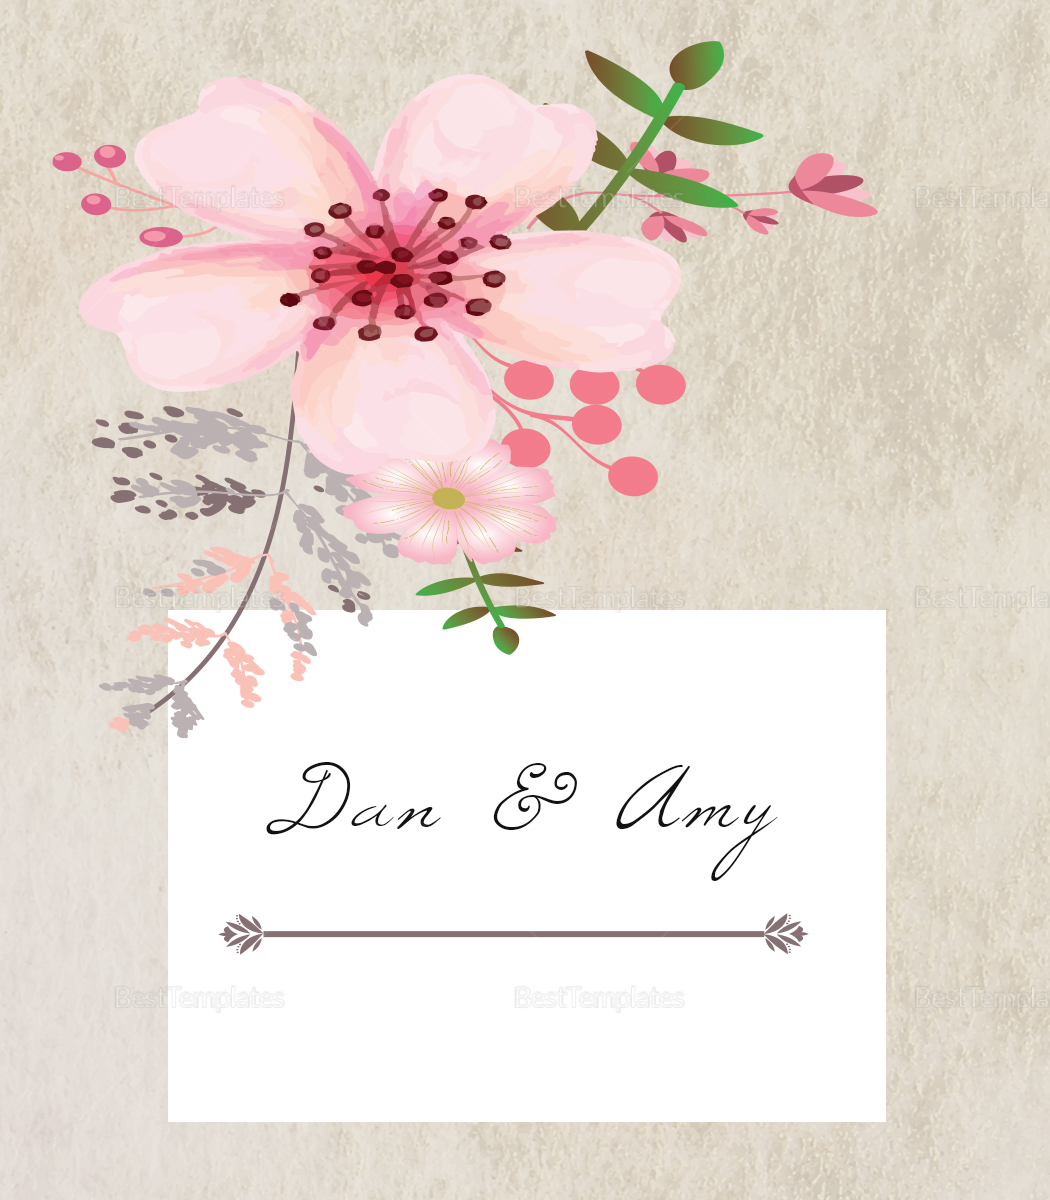 Pink Floral Wedding Place Card Design Template